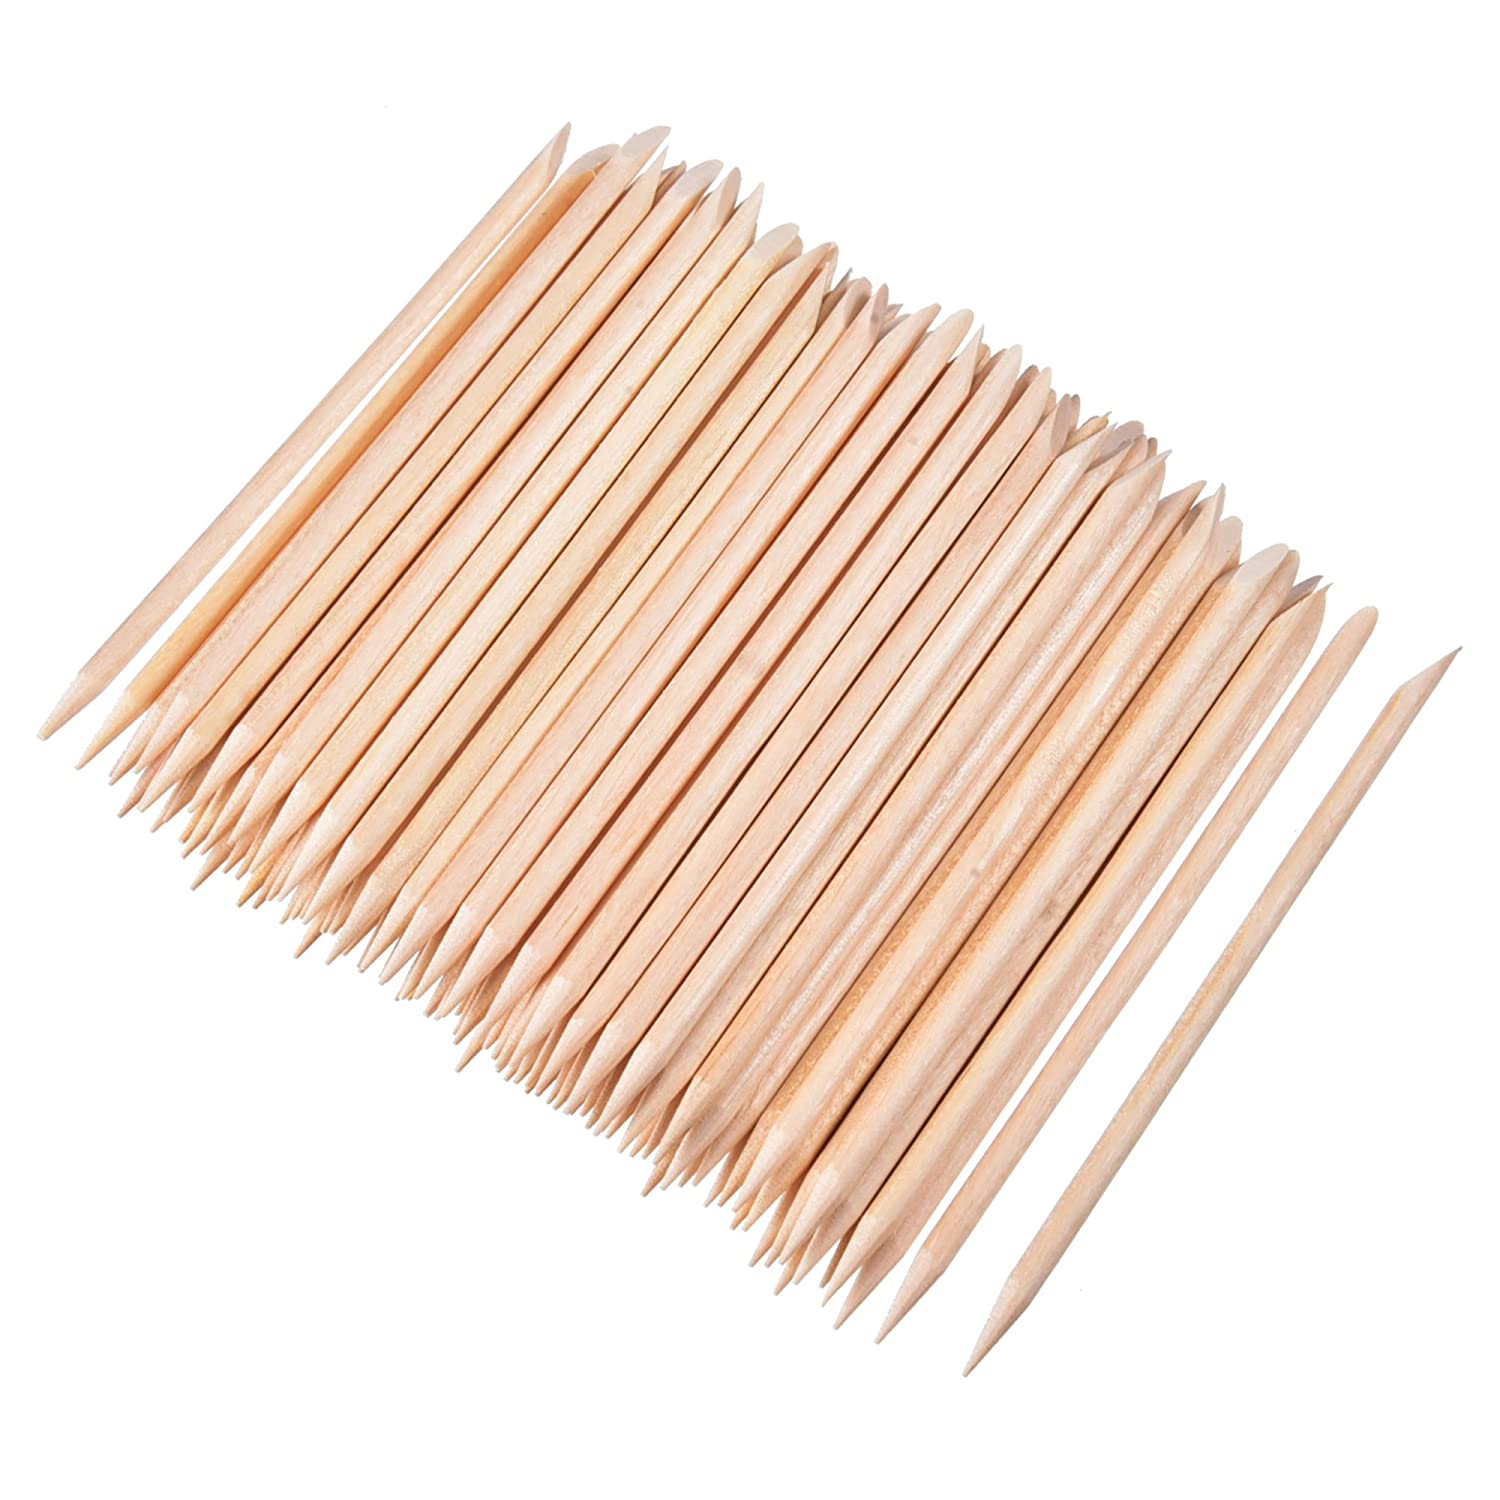 100 Pieces Orange Wood Sticks Nail Cuticle Stick for Pusher Remover Manicure Art Pedicure, 4.3 Inches Hicarer